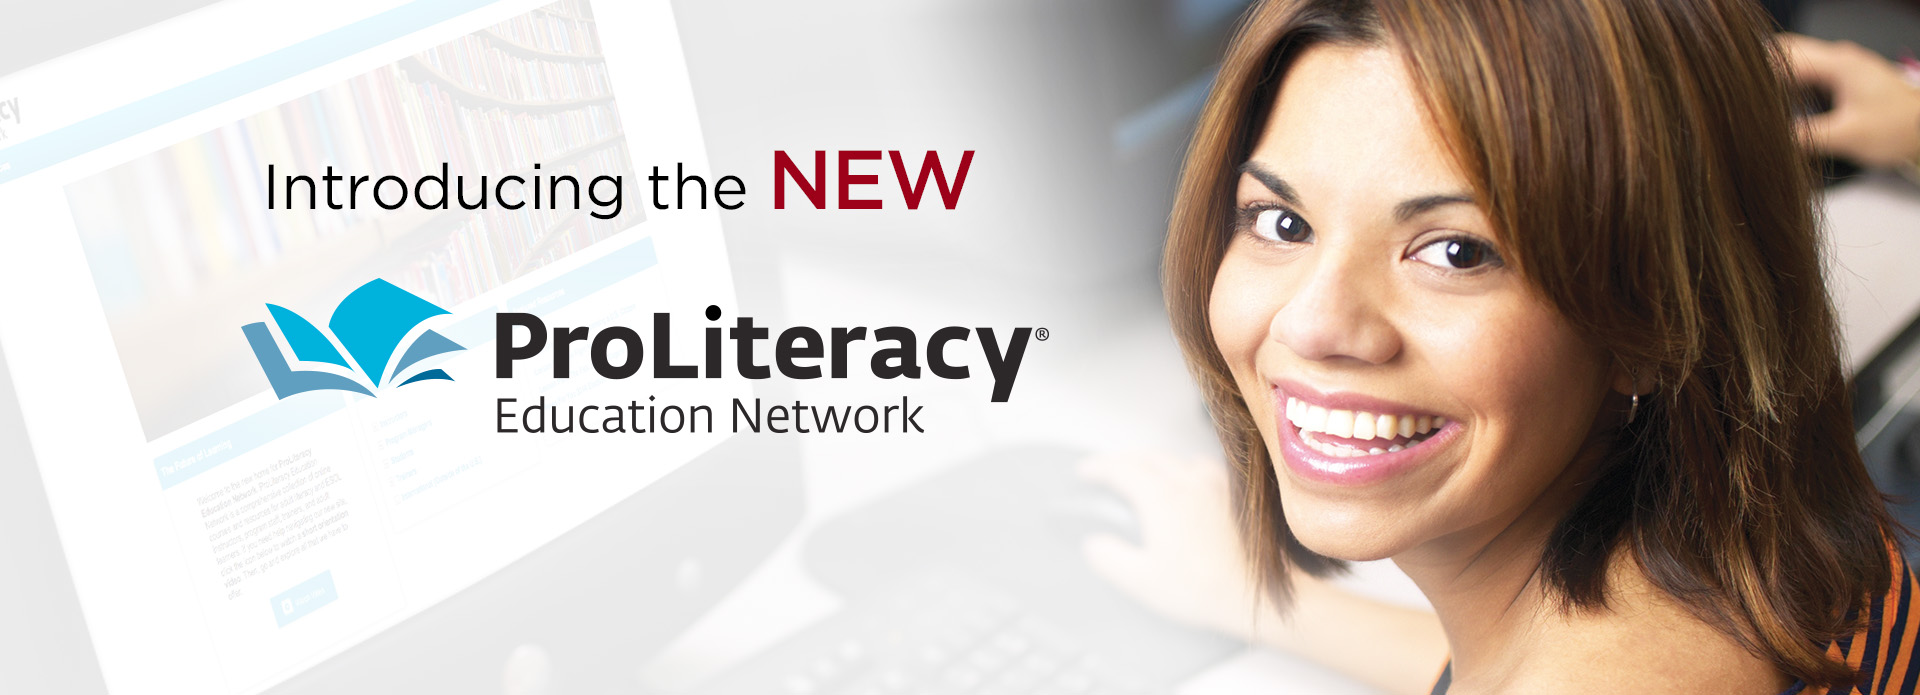 Introducing the NEW ProLiteracy Education Network